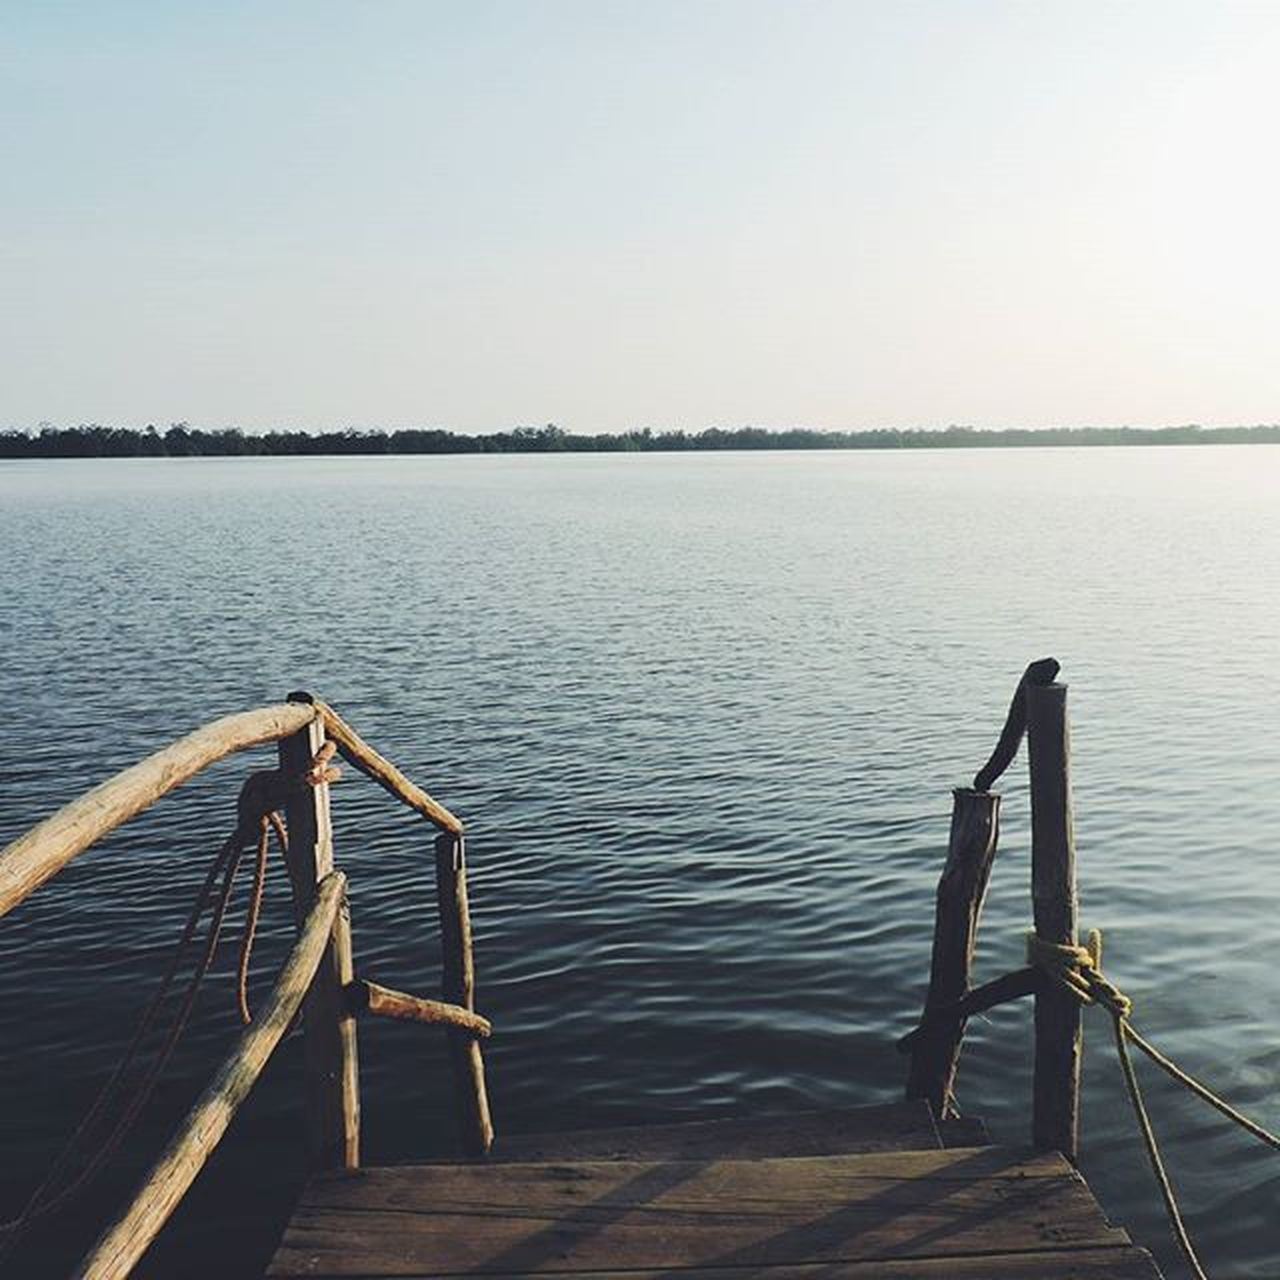 railing, water, tranquility, lake, outdoors, clear sky, nature, sky, day, no people, beauty in nature